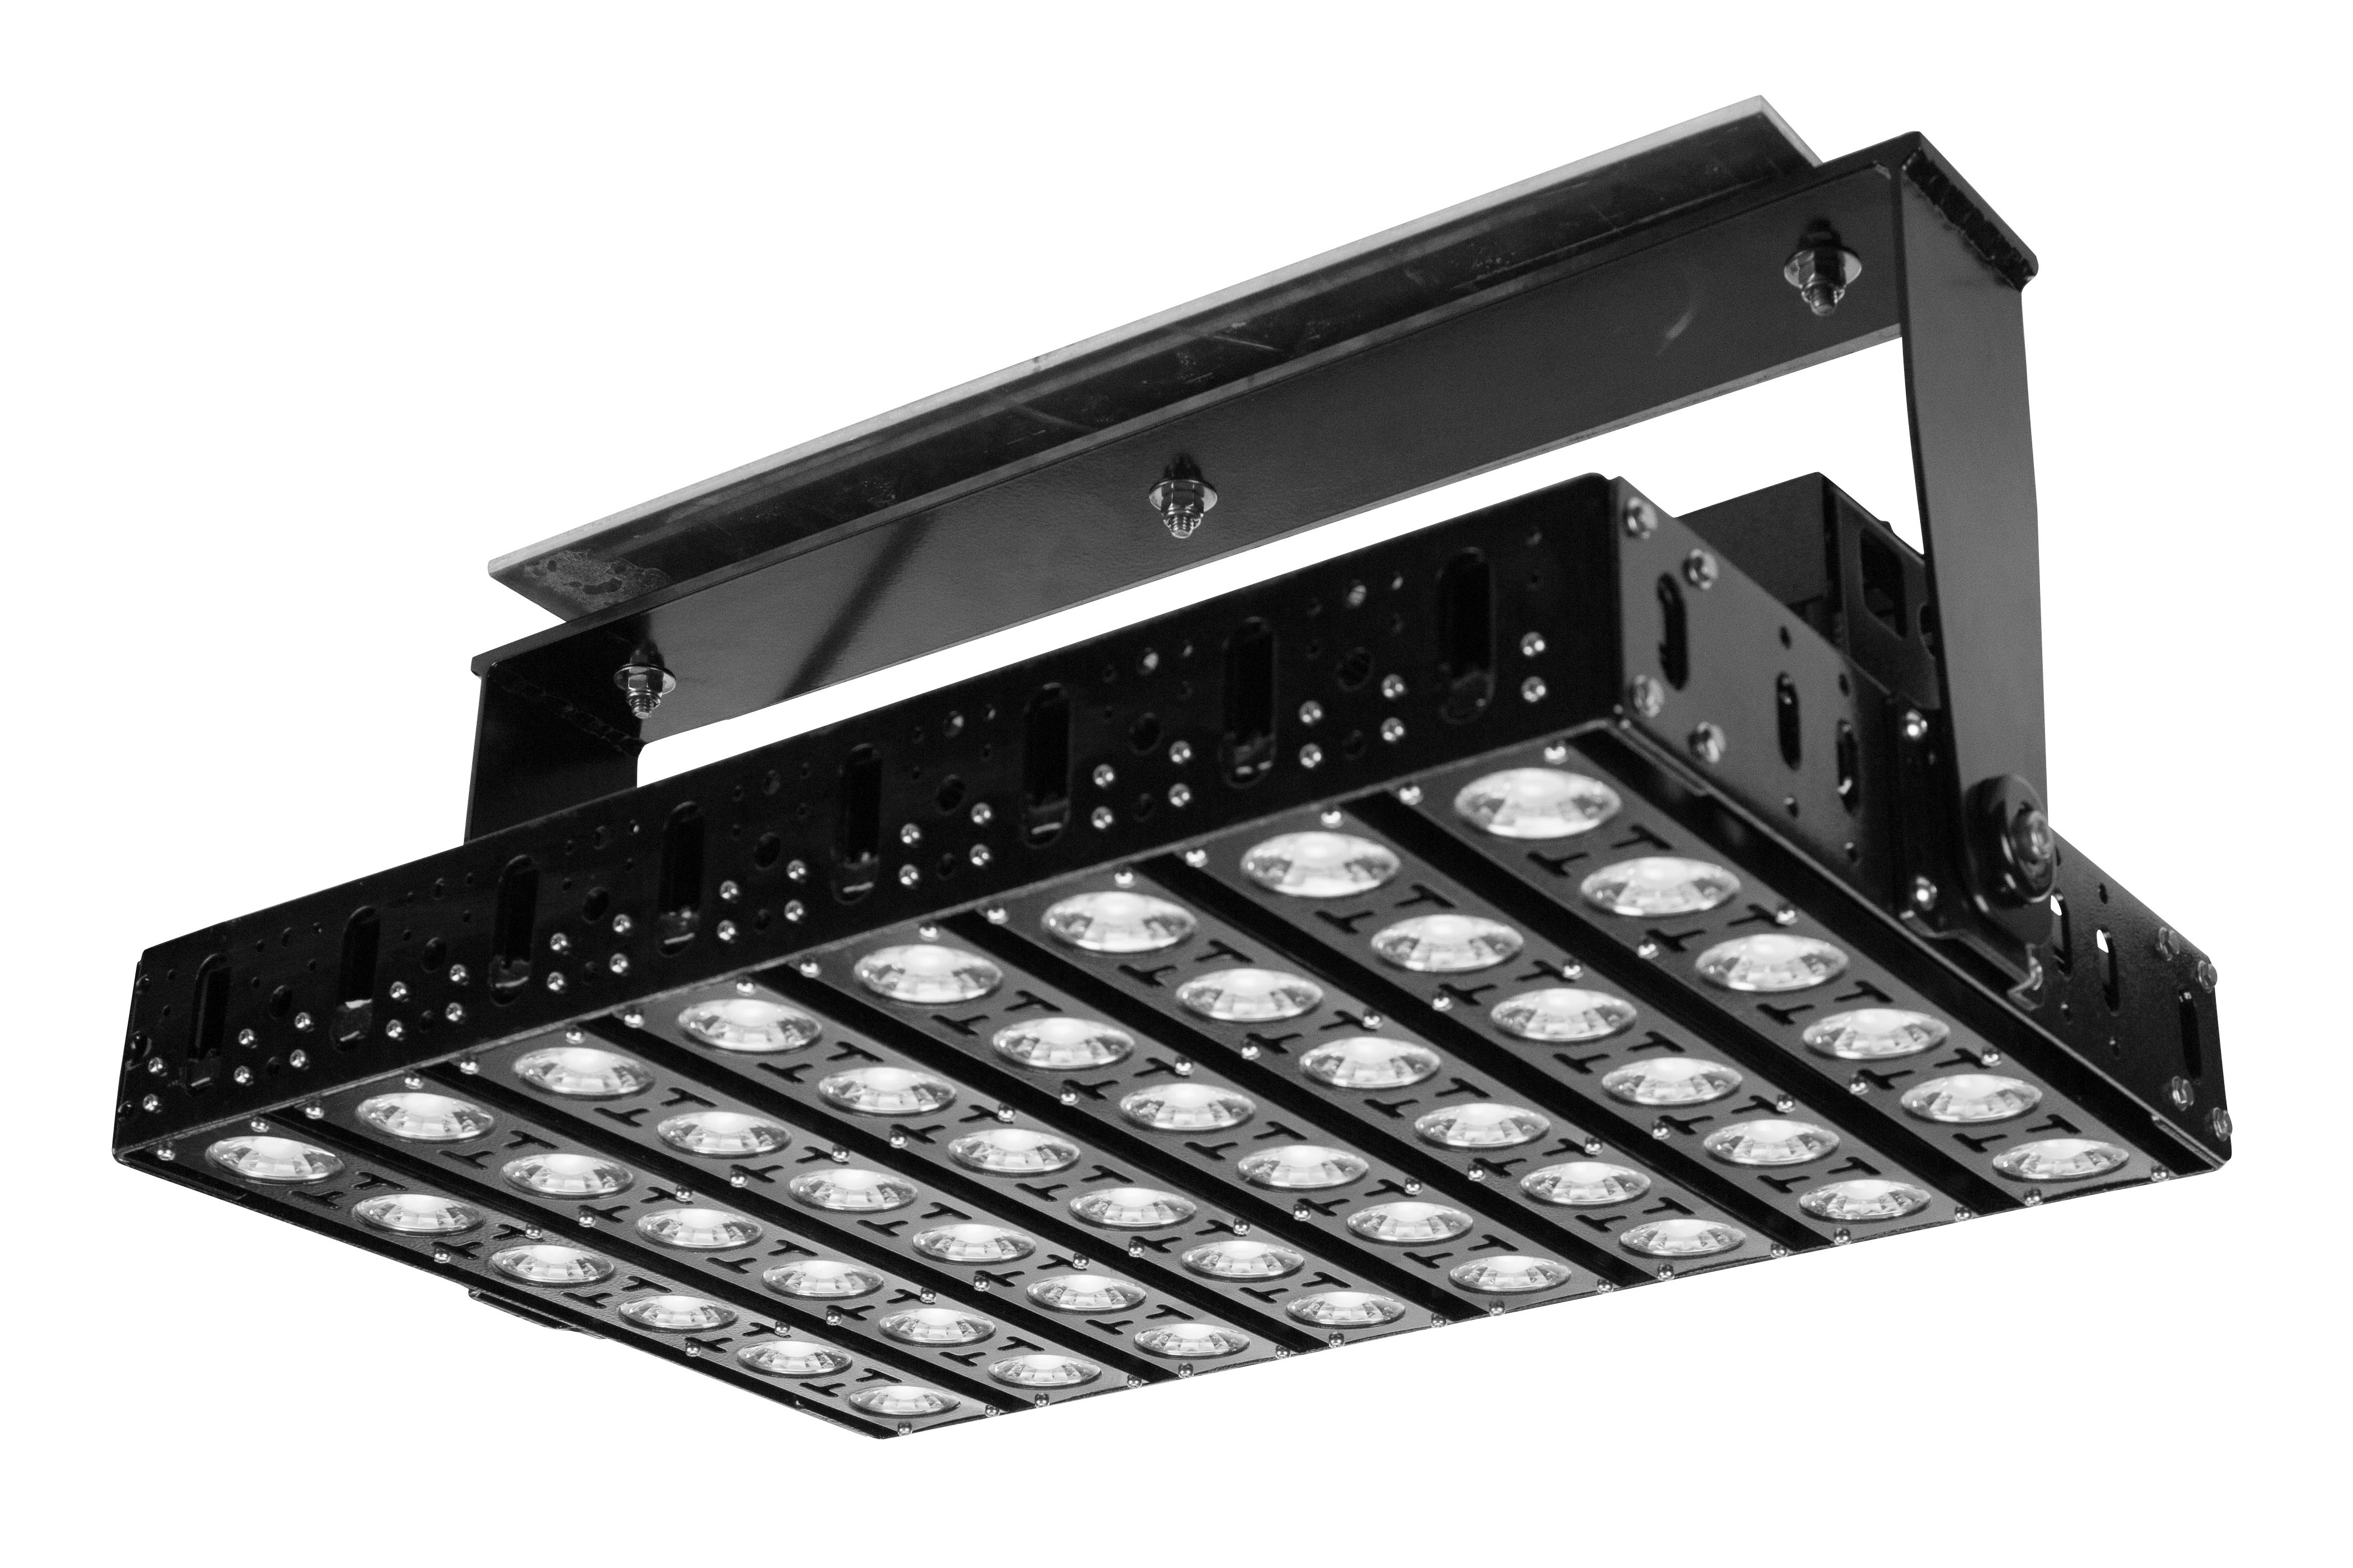 Overhead Crane Lights Led : Larson electronics releases a watt led crane light with stainless steel mounting bracket